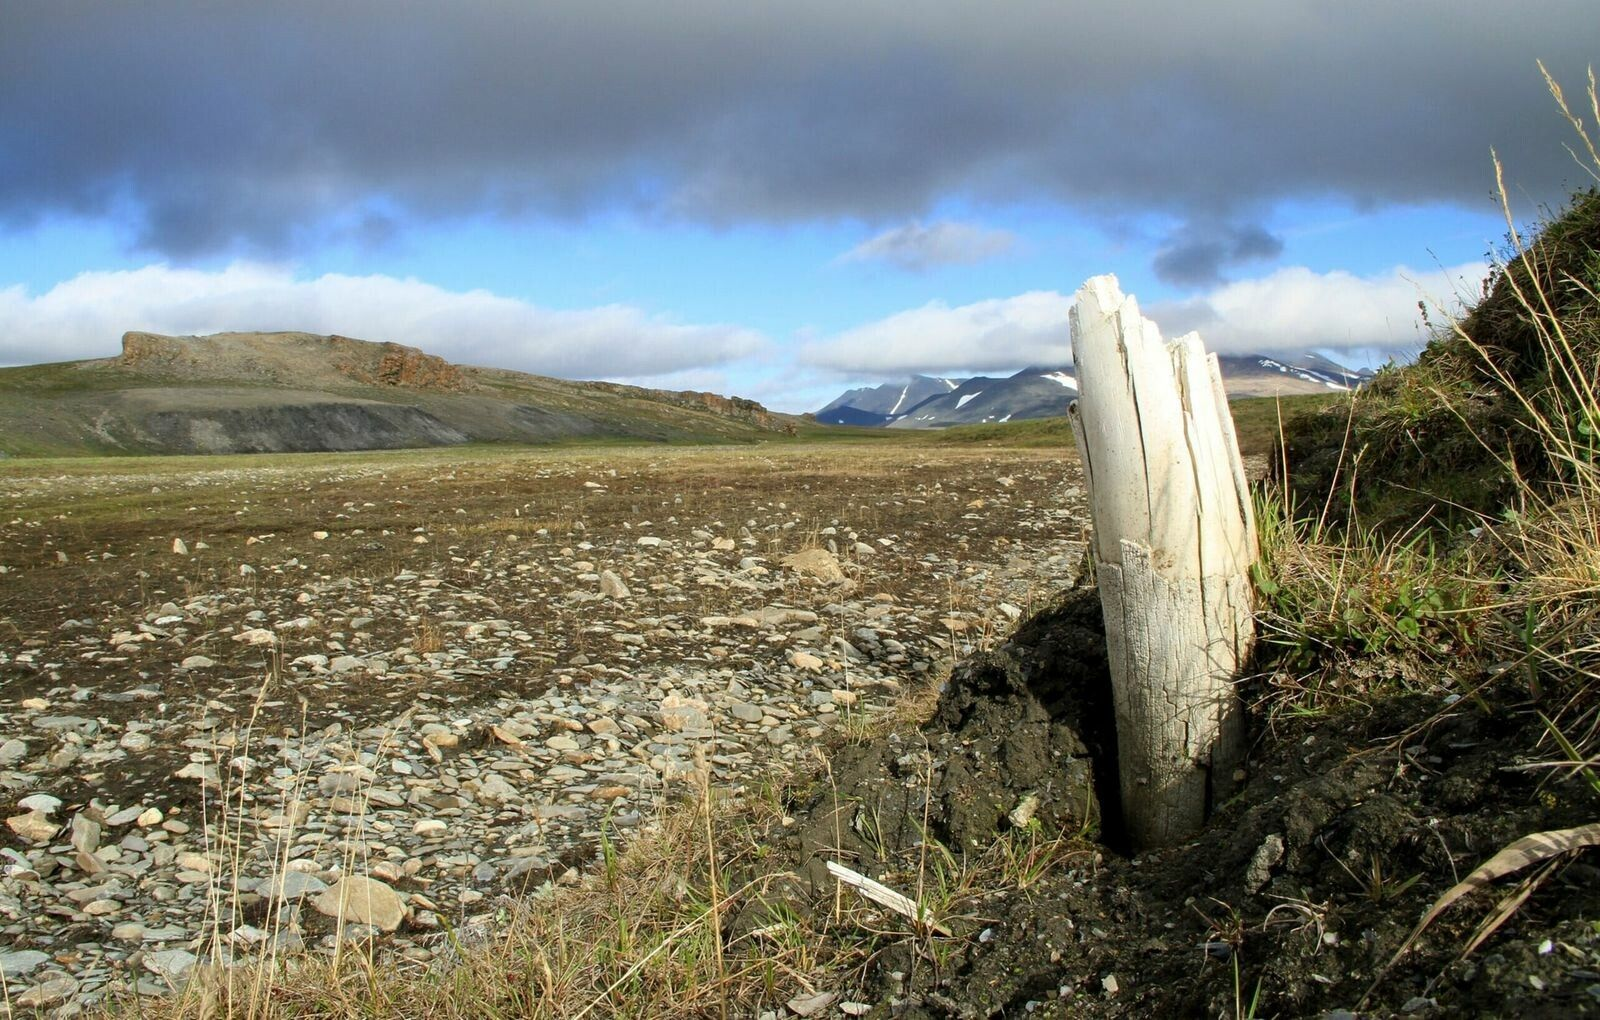 Woolly mammoth tusks sometimes emerge from the permafrost at Wrangel Island, located in northeastern Siberia. Wrangel ...